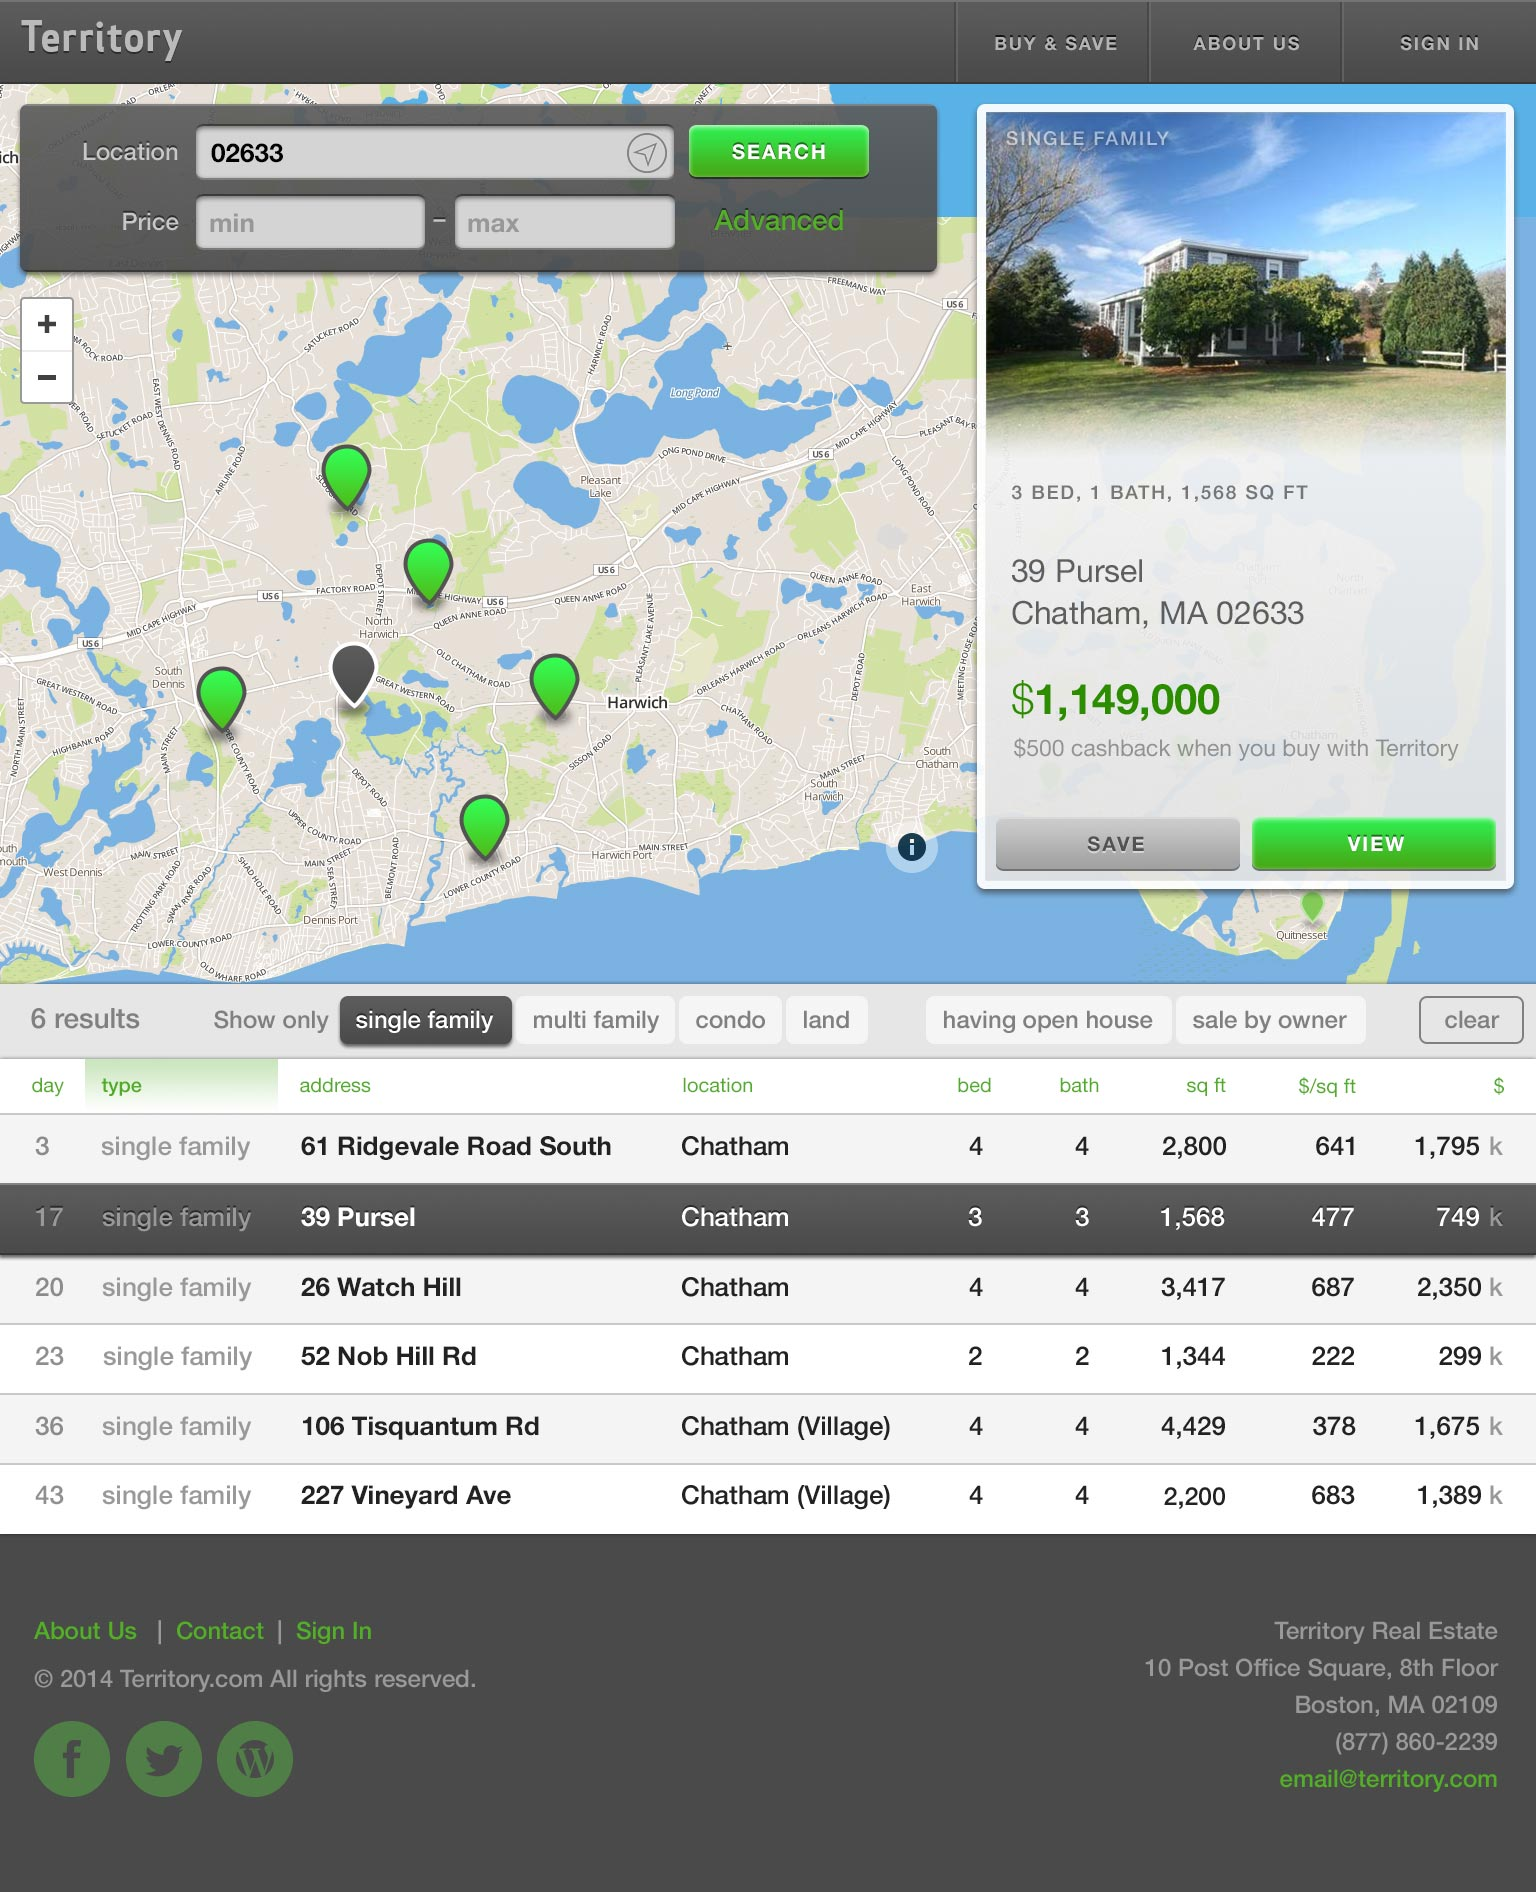 Mockup of the property search flow on web